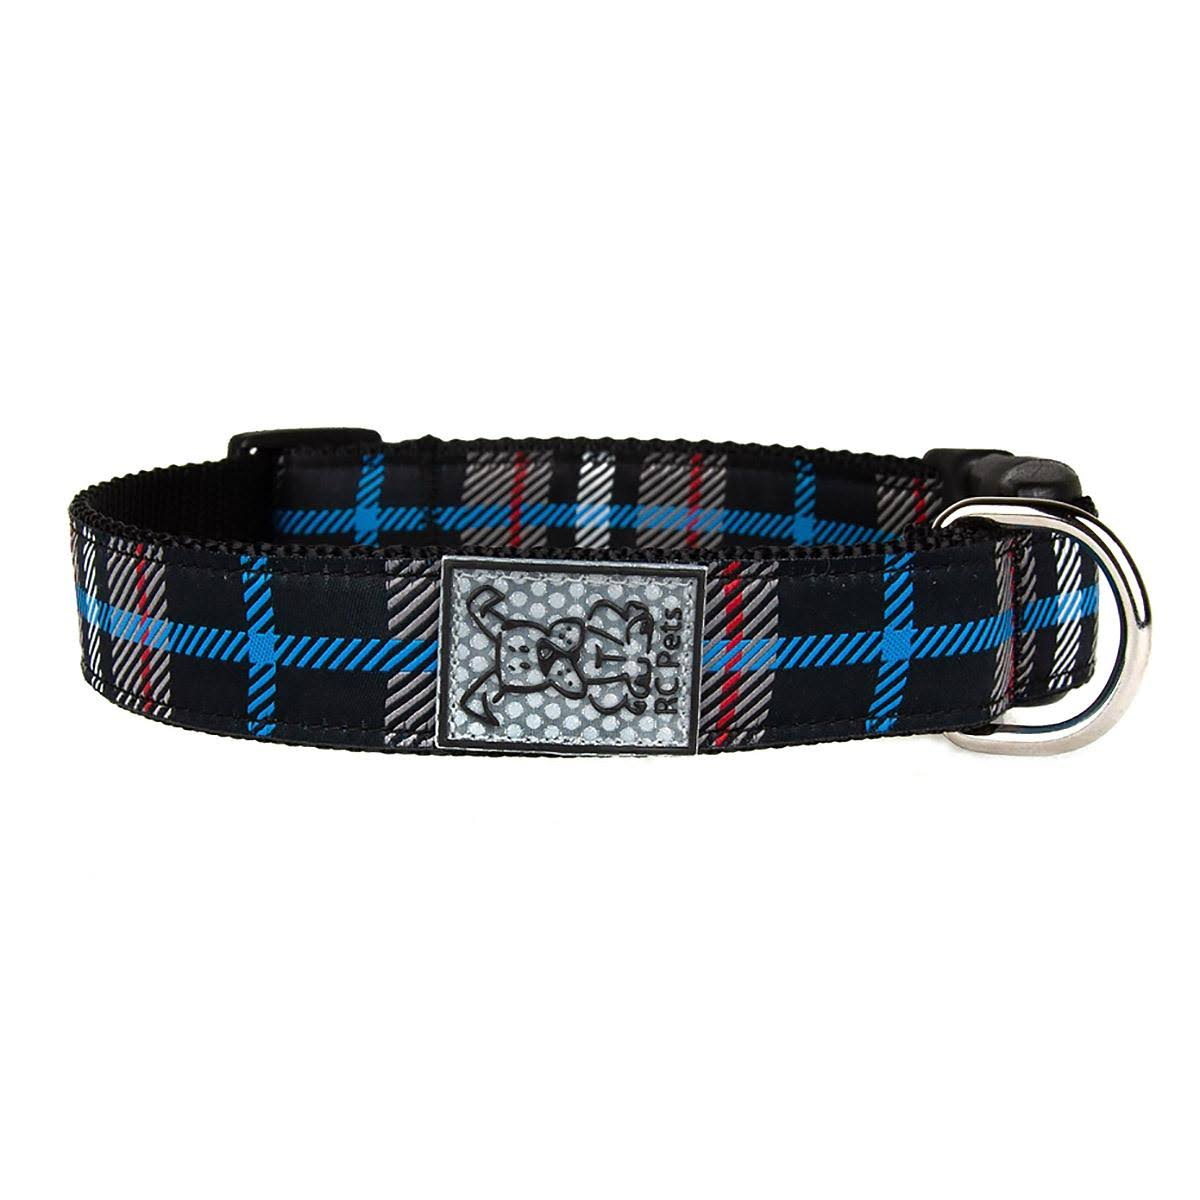 Black Twill Plaid Adjustable Clip Dog Collar by RC Pet - X-Small